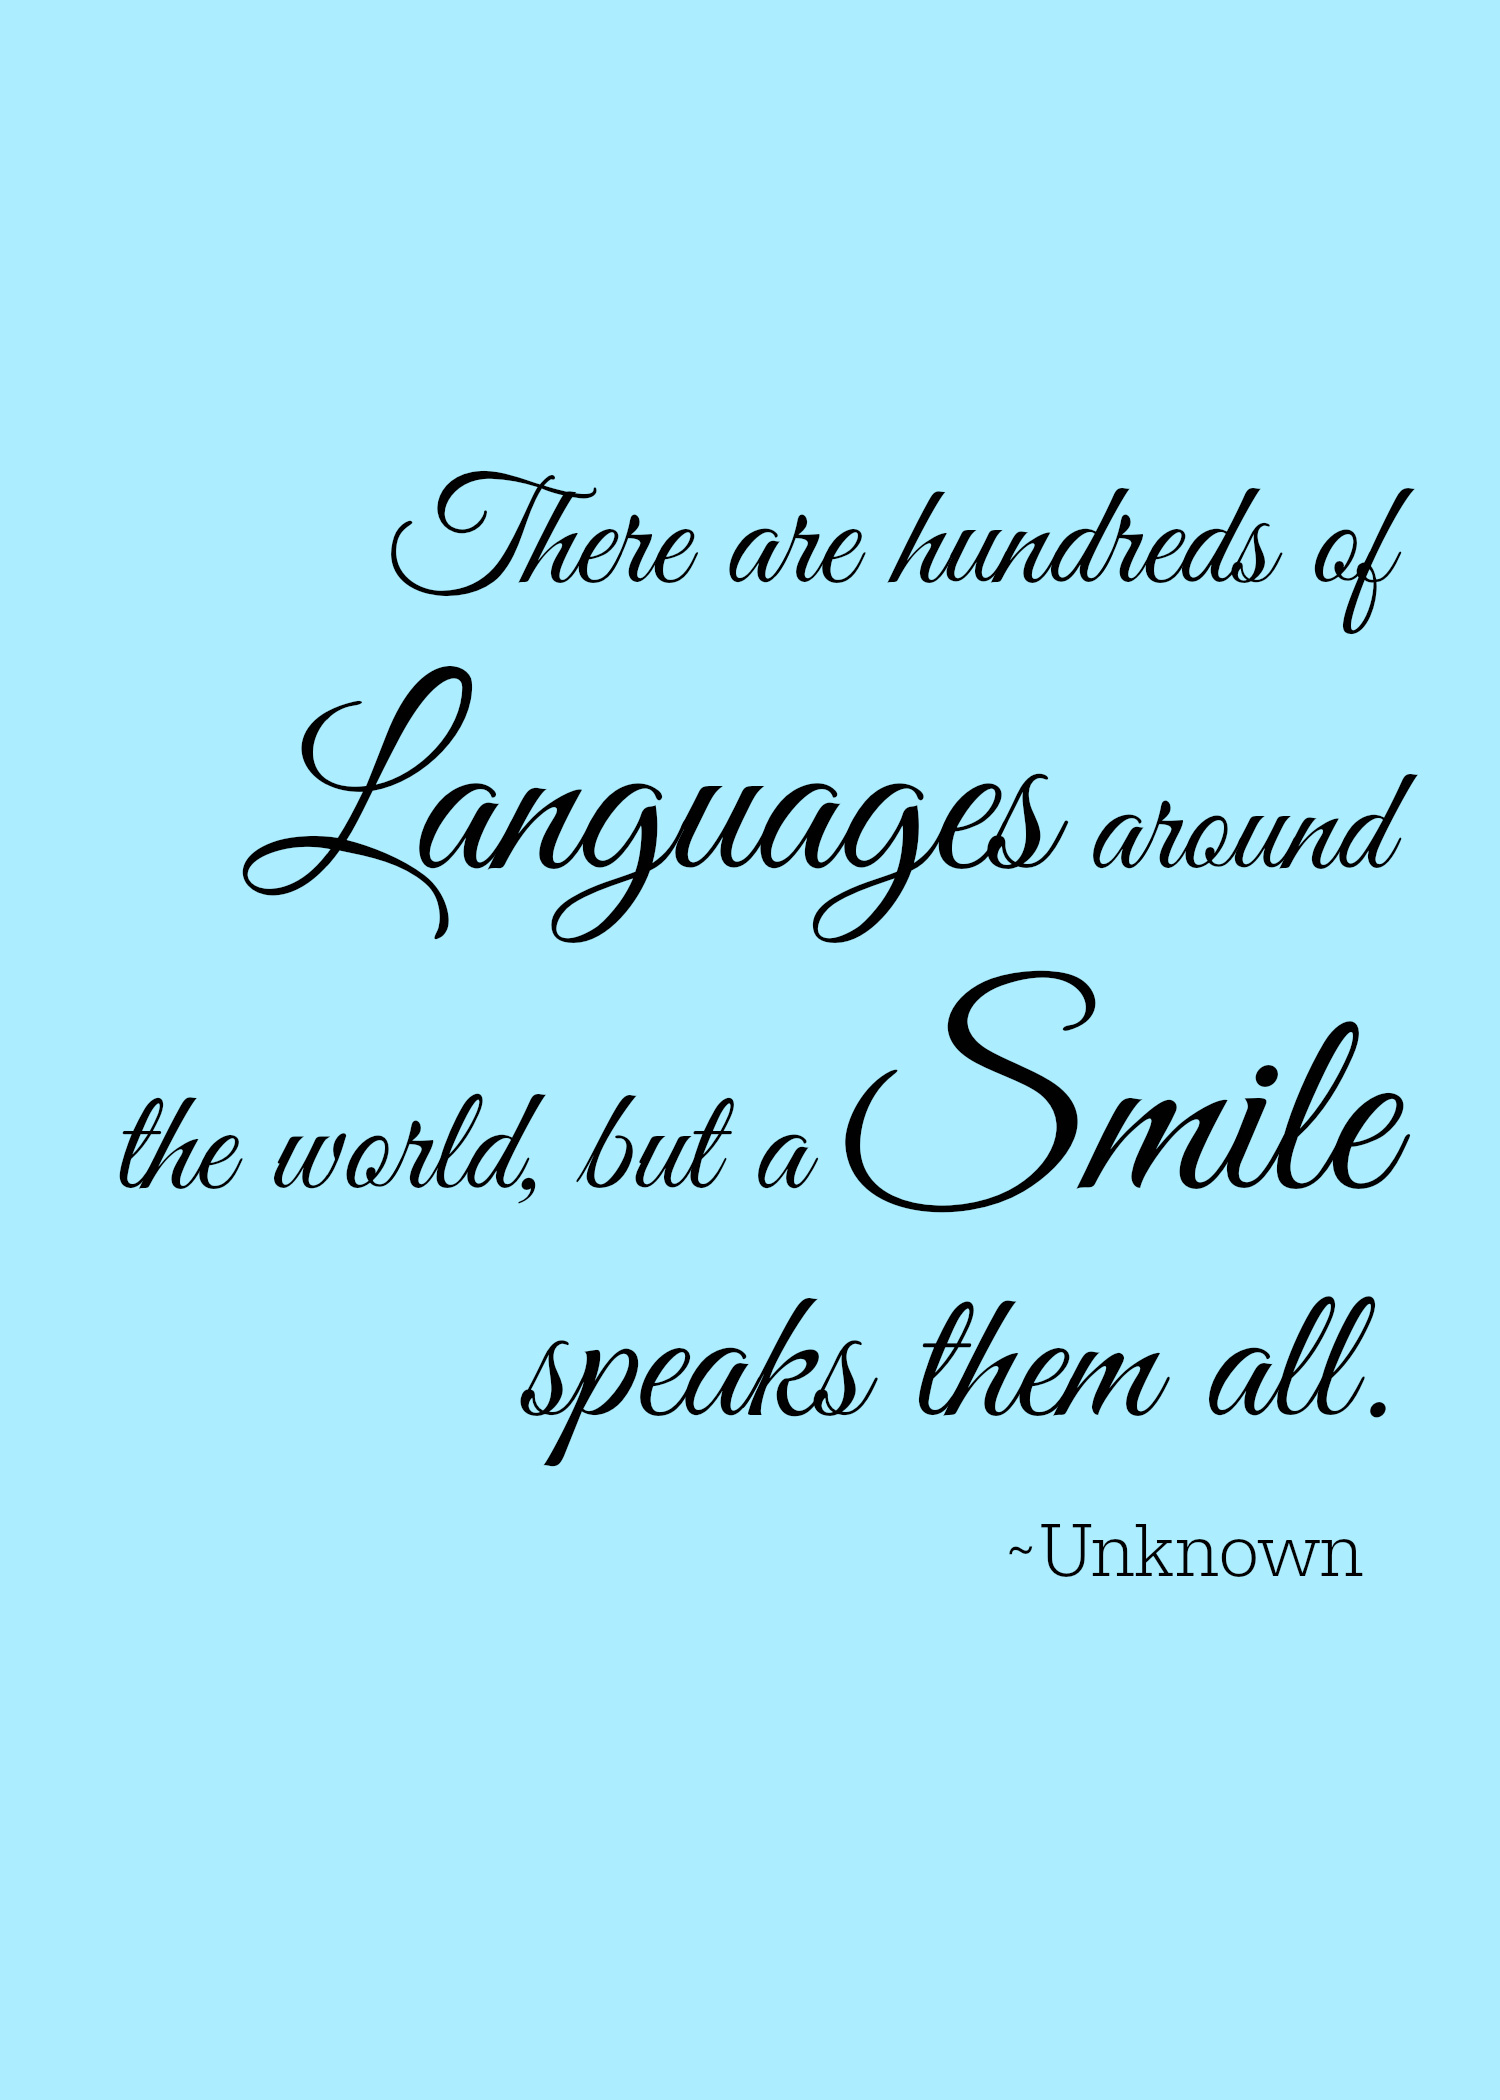 Quotes About Smiles Smile Train Spreading Smiles Around The World  Thesuburbanmom